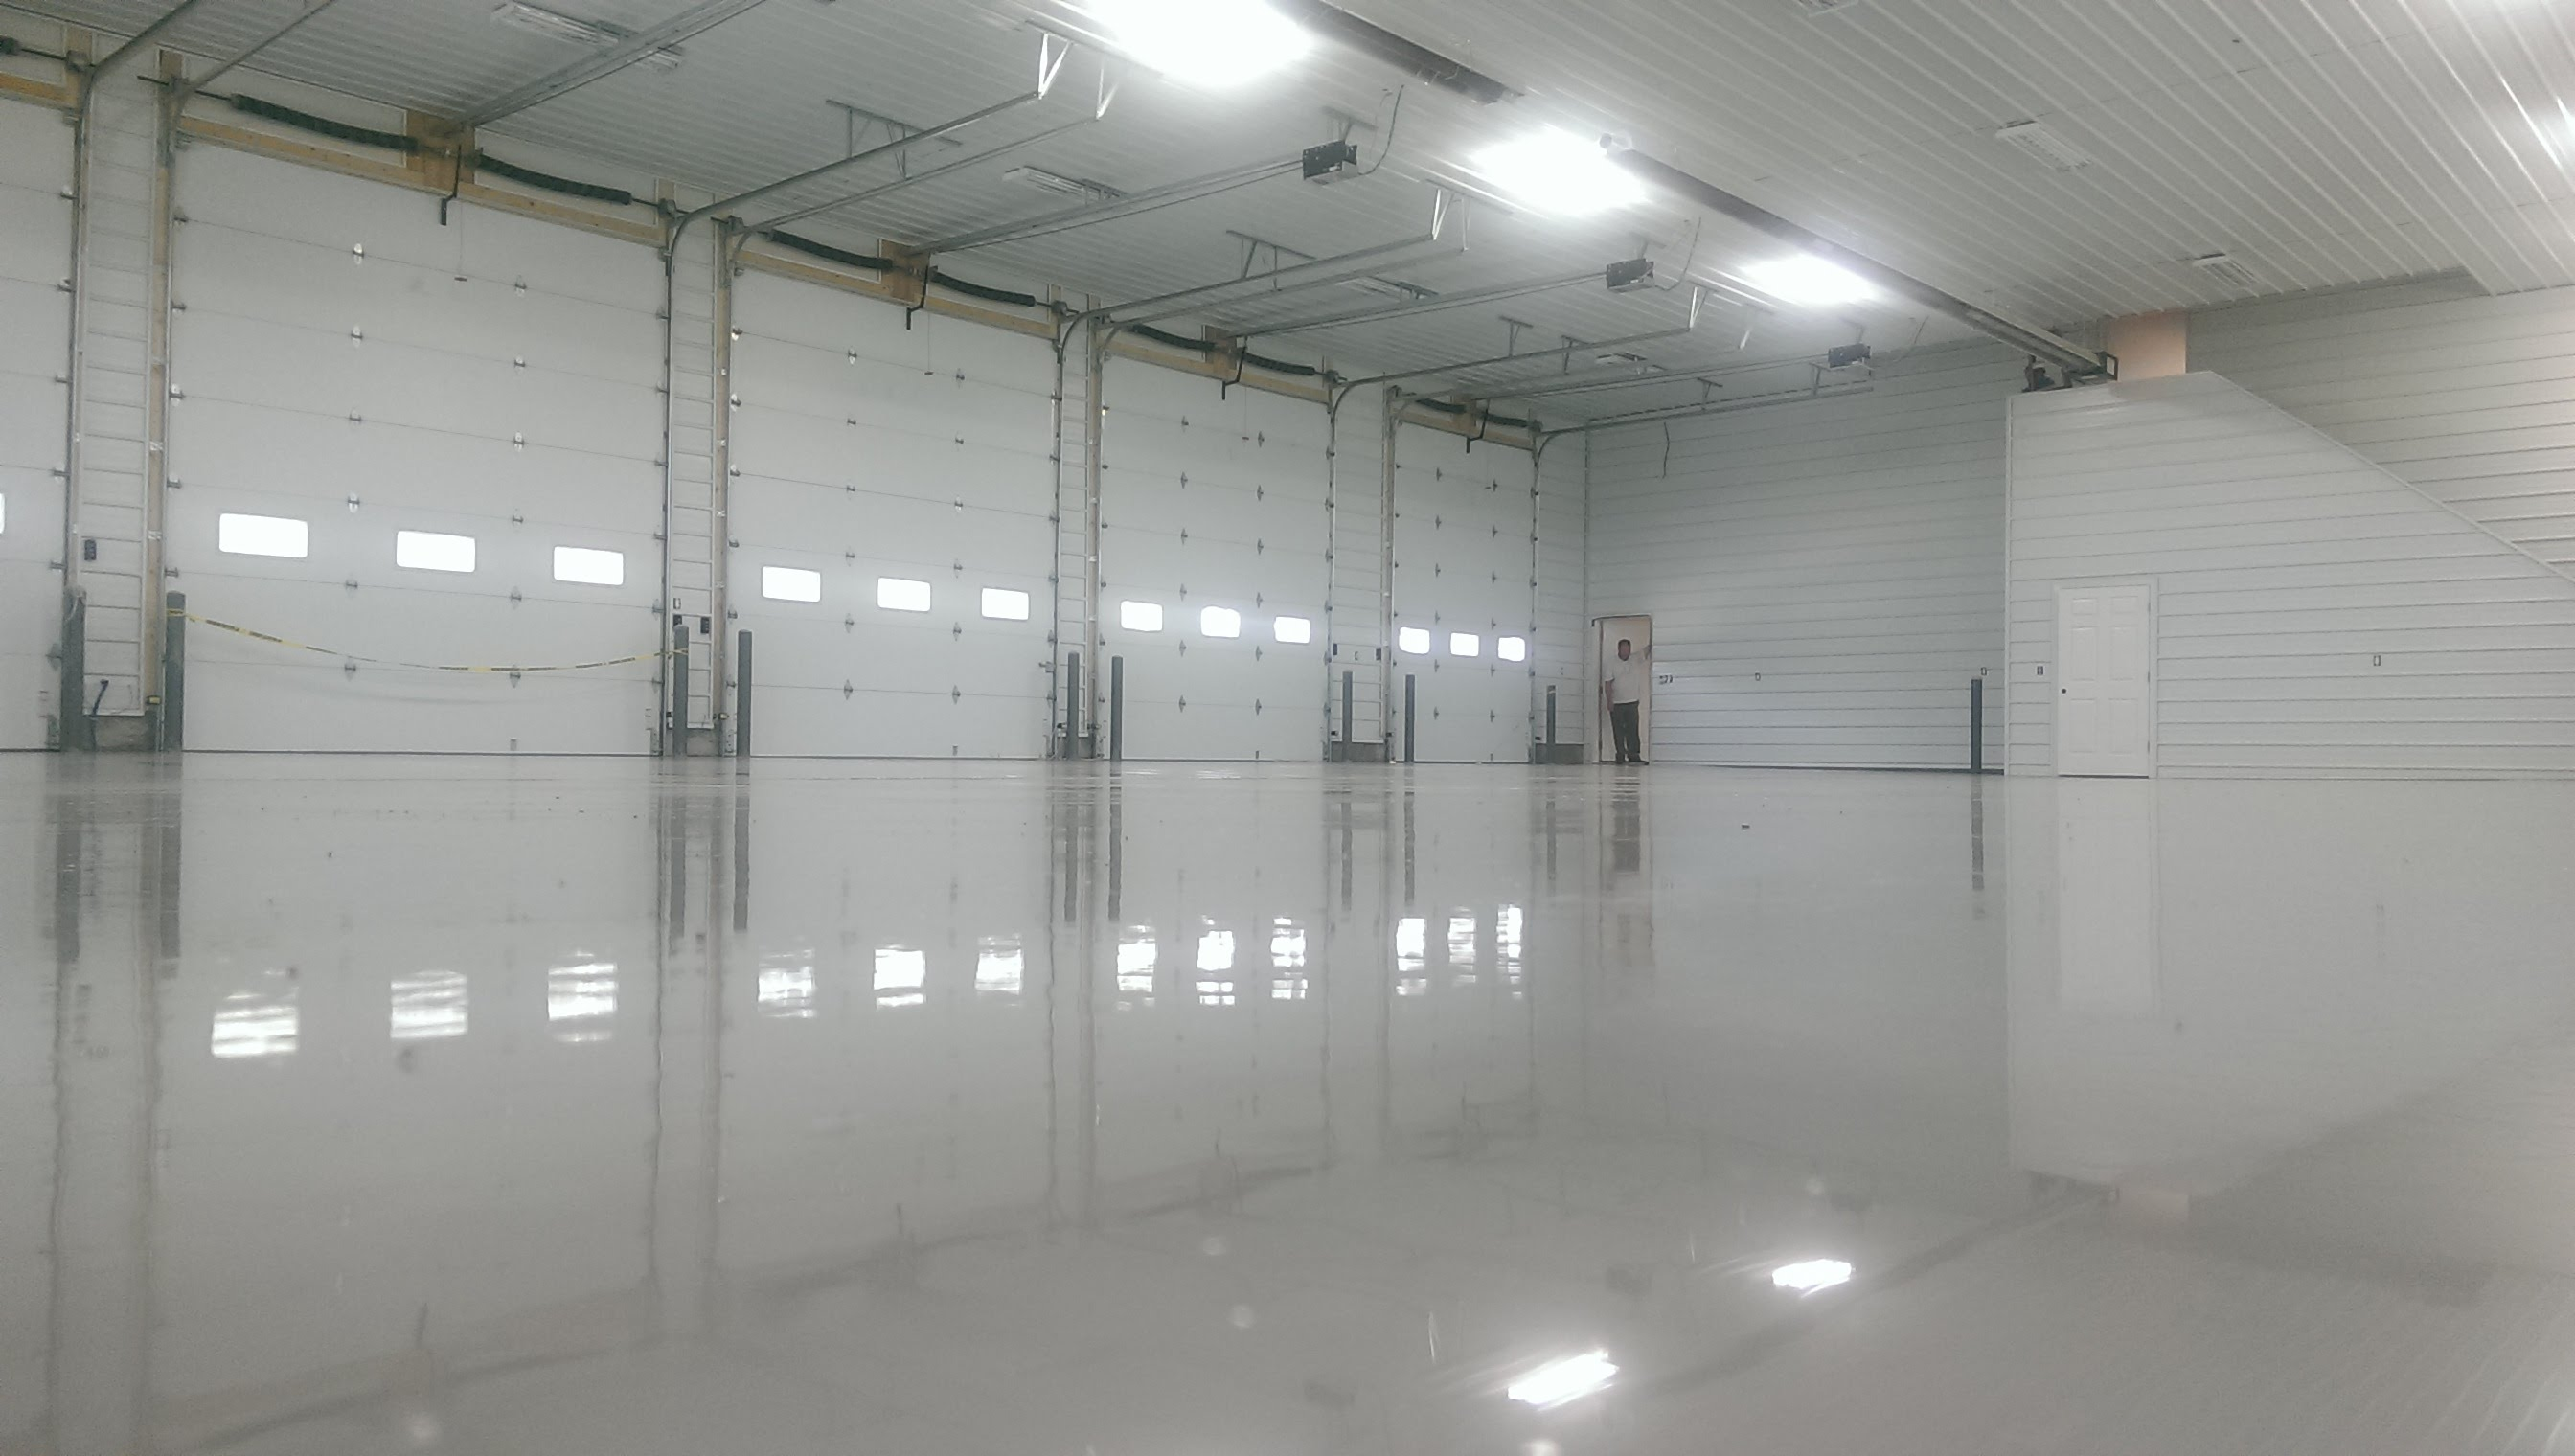 epoxy flooring - How To Epoxy Garage Floor